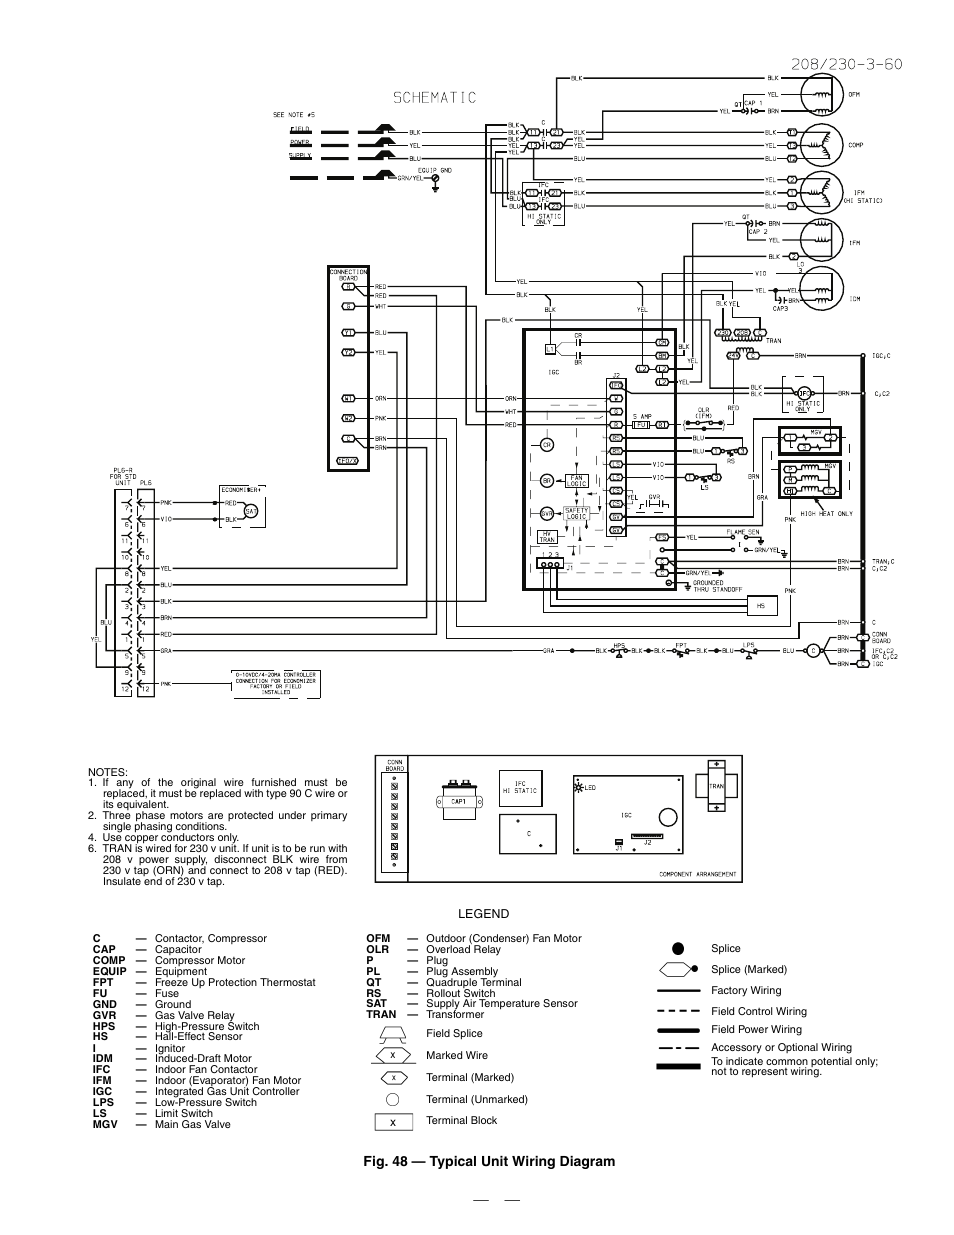 Bryant Condenser Wiring Diagram For Thermostat Page 6